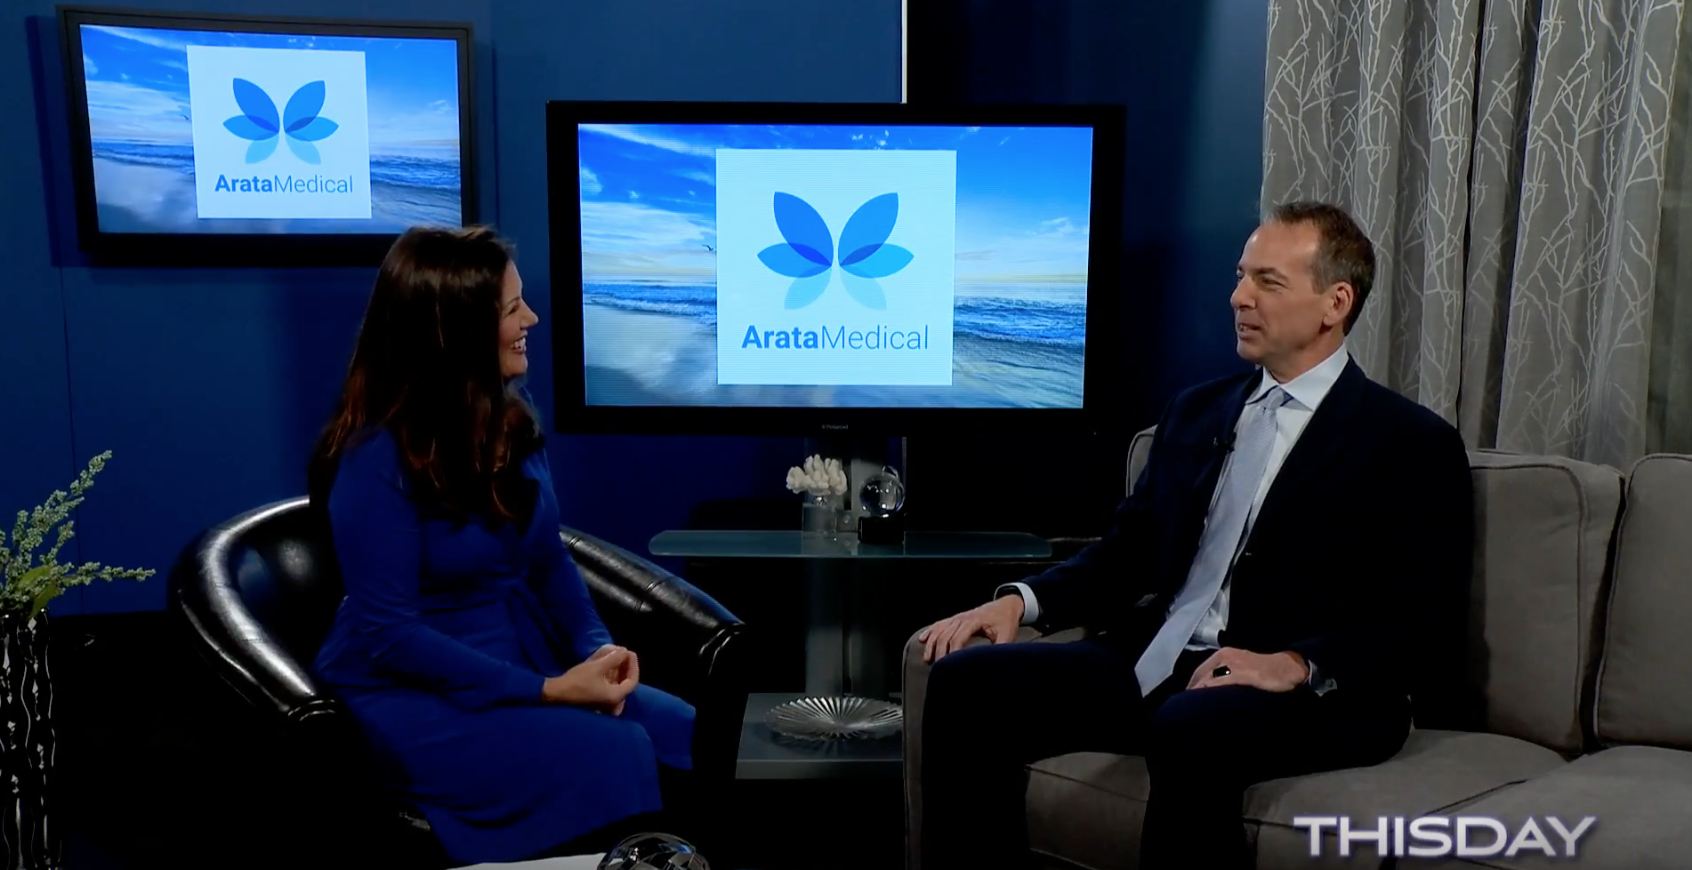 Dr. Arata Discusses Stem Cell Therapy on Channel 6 News